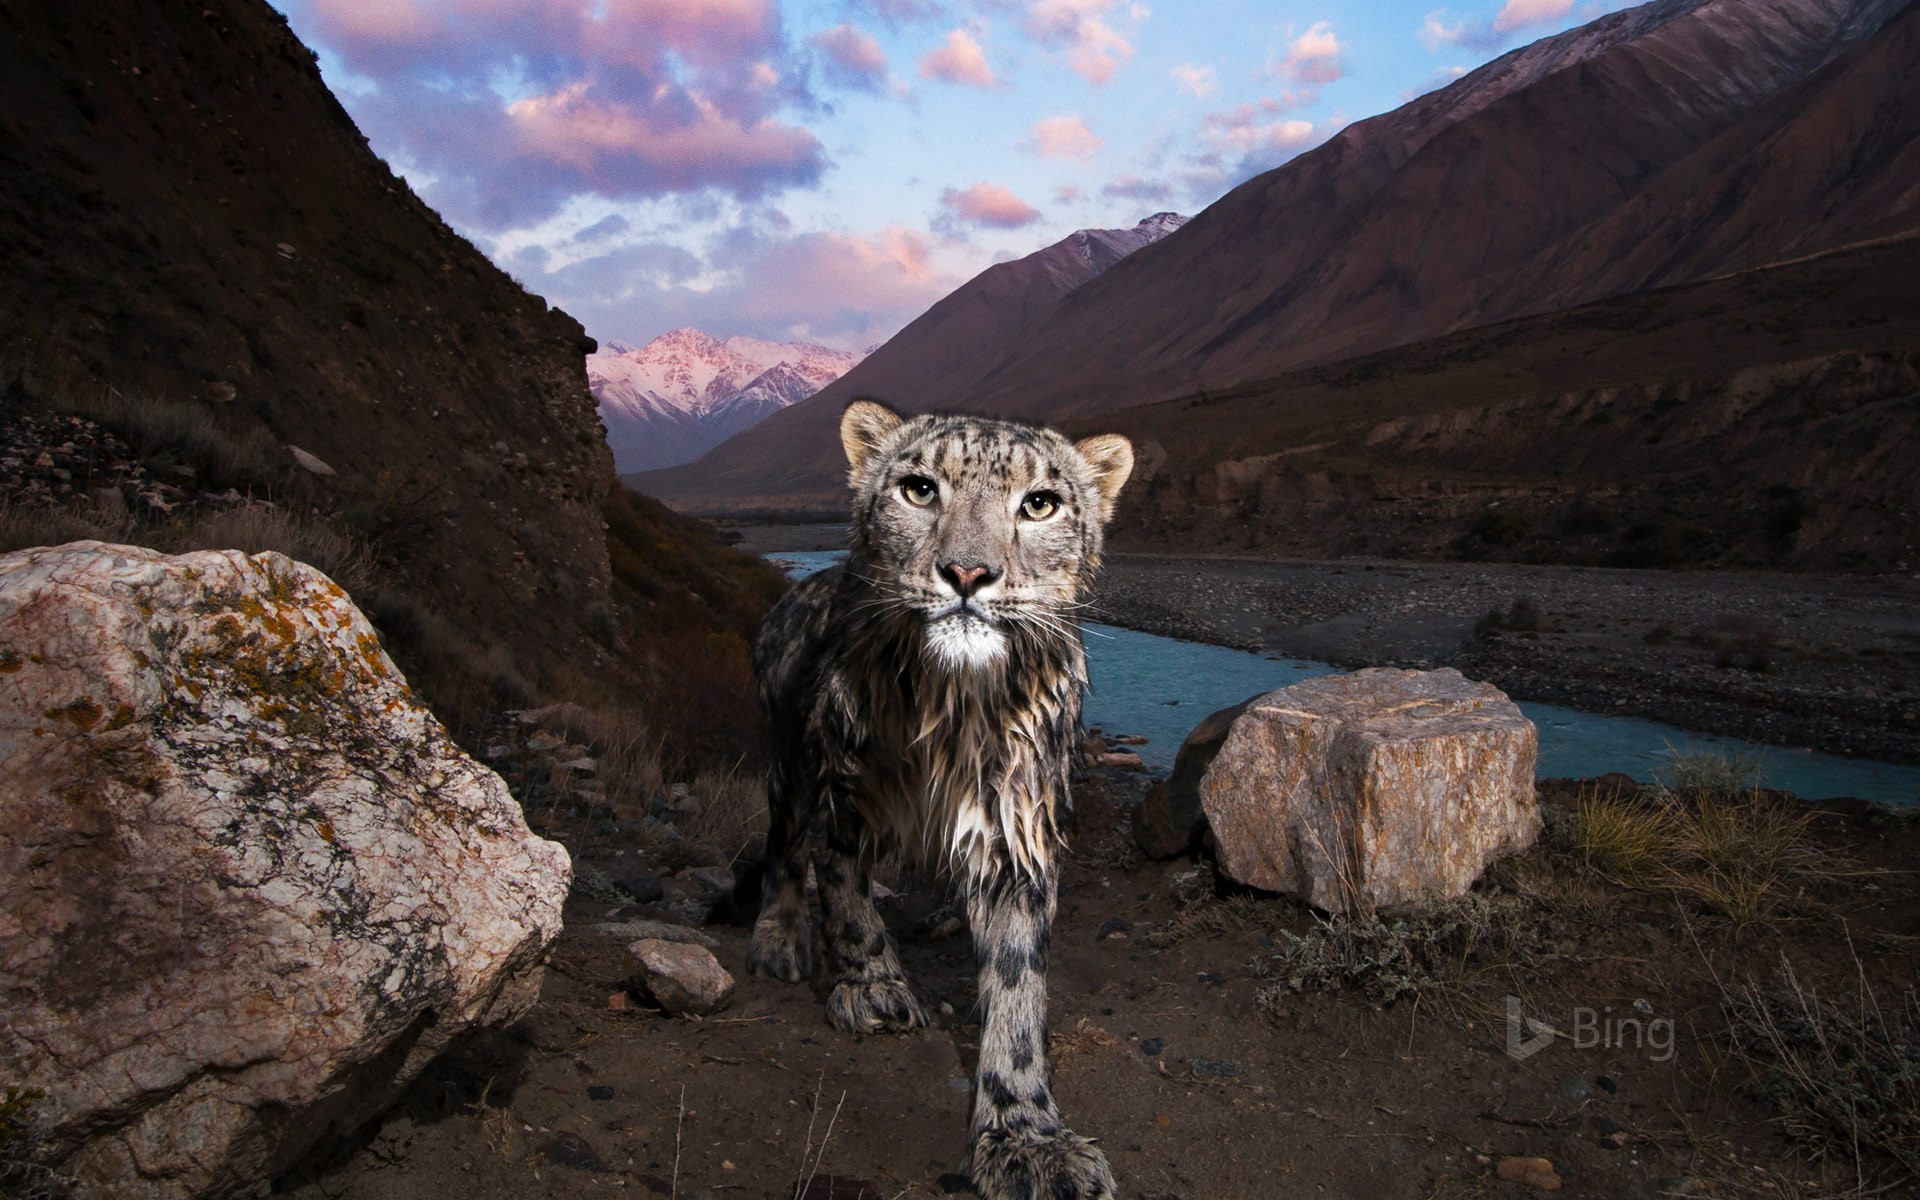 Snow leopard in the Tian Shan, Kyrgyzstan